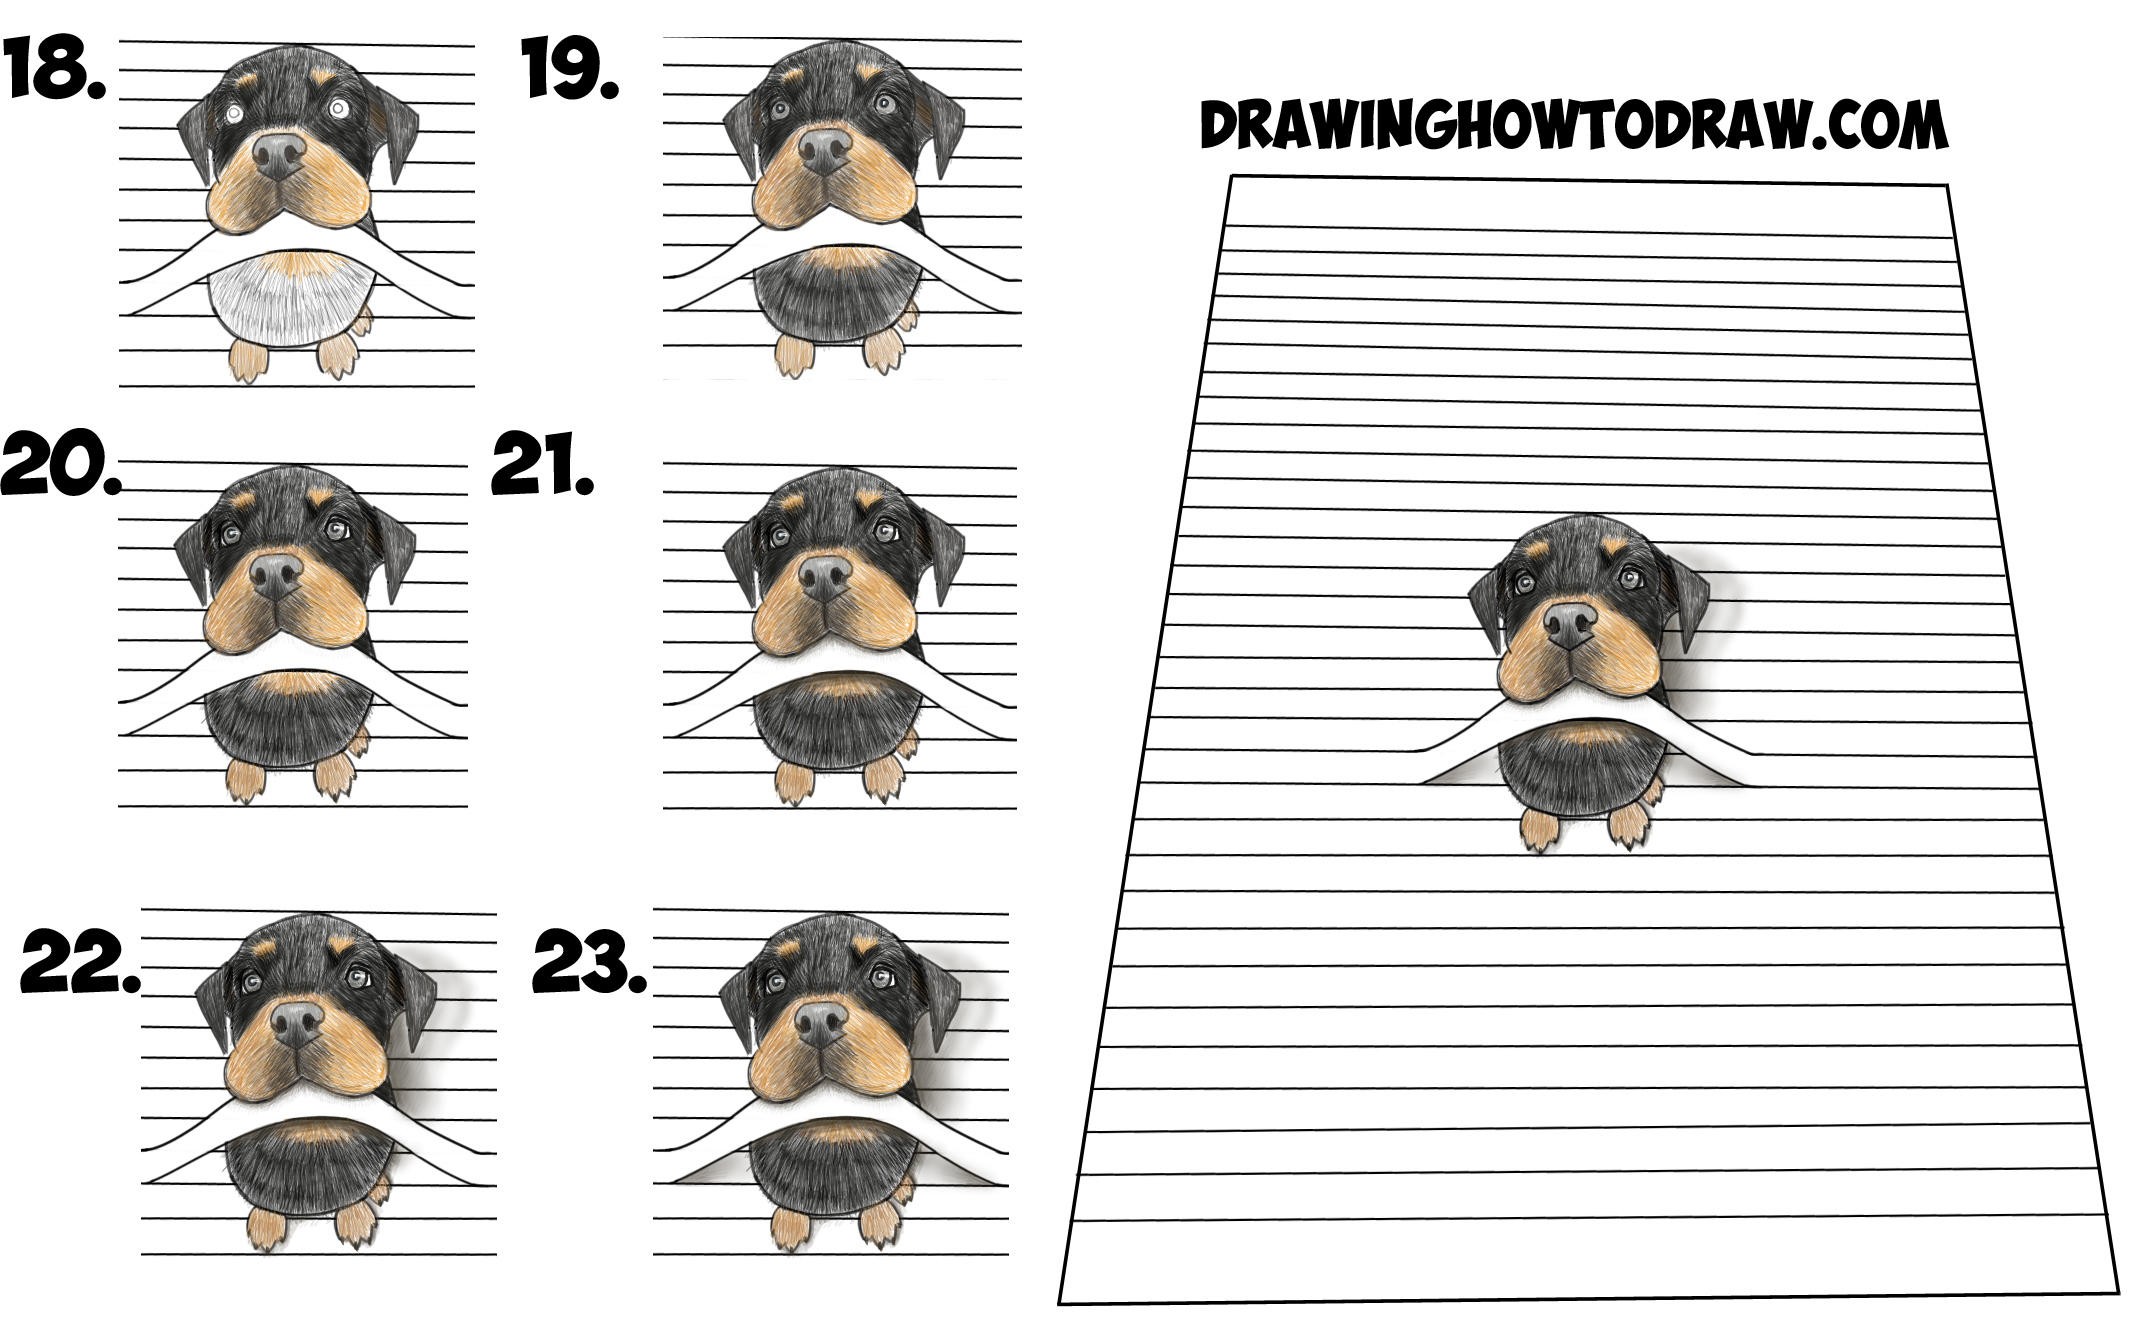 D Lined Paper Drawings : How to draw a cool d rottweiler puppy dog biting line